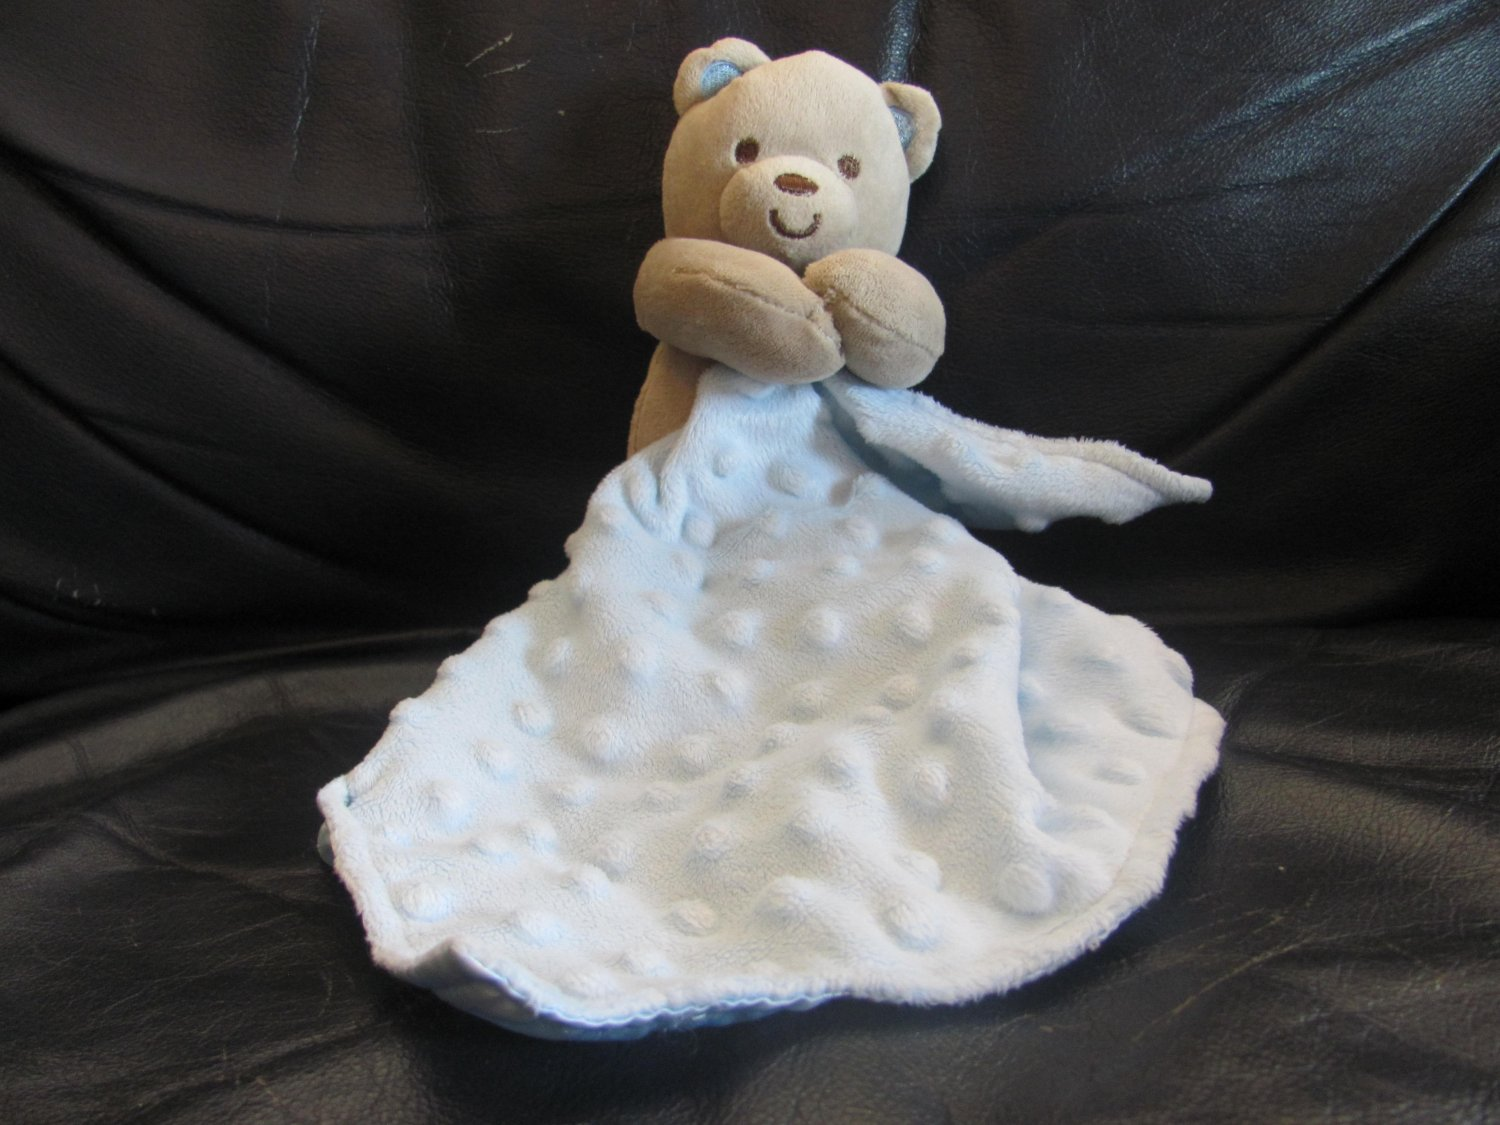 Carters Child Of Mine Teddy Rattles Blue Minky Dot Security Blanket Lovey Plush 7""